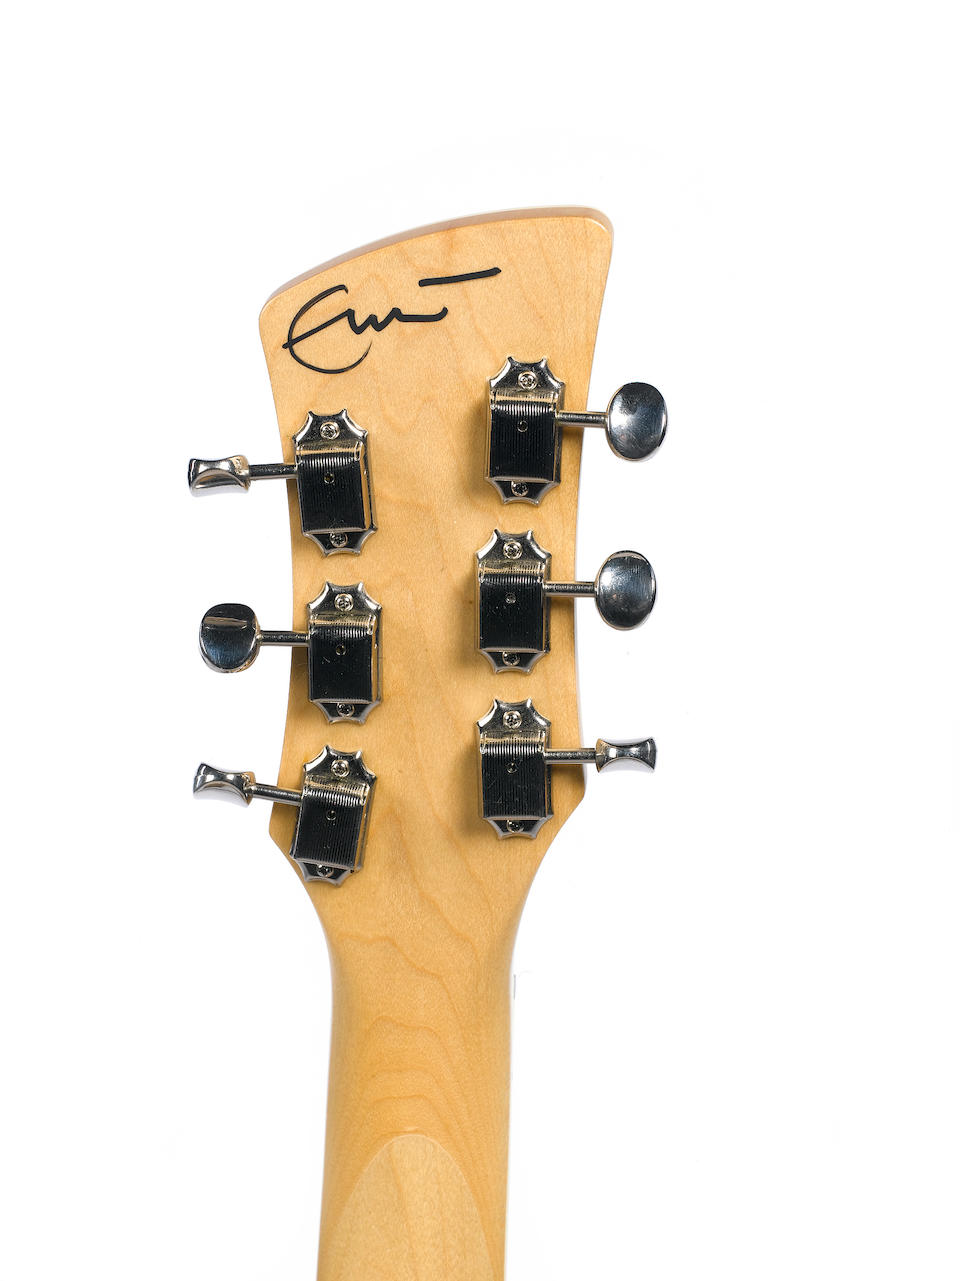 An early 1990s Charvel Surfcaster, Serial No. 380538,